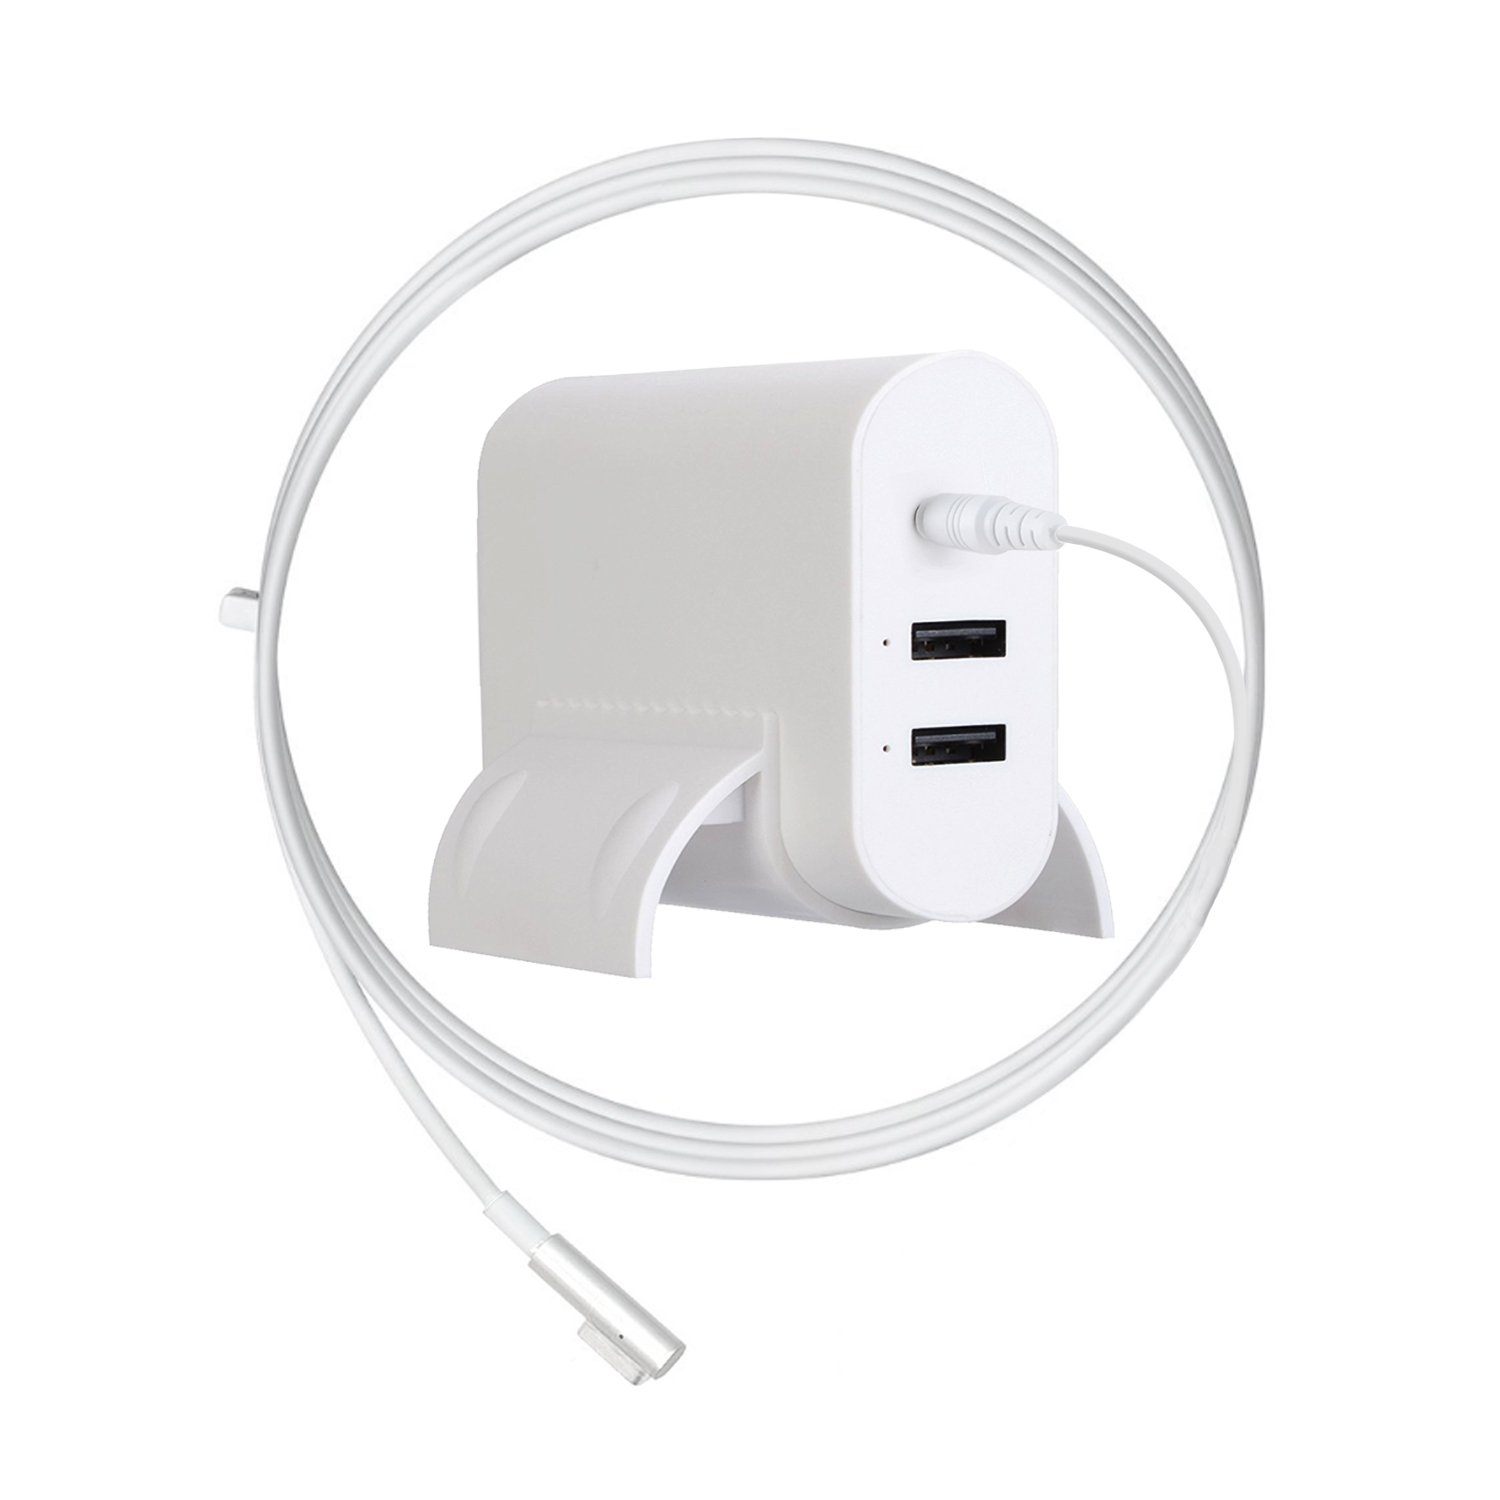 MacBook Pro Charger, Ponkor 85W Magsafe L-tip Power Adaptor Charger with 2-Port USB for Apple Mac Book Pro 15 inch and 17 inch